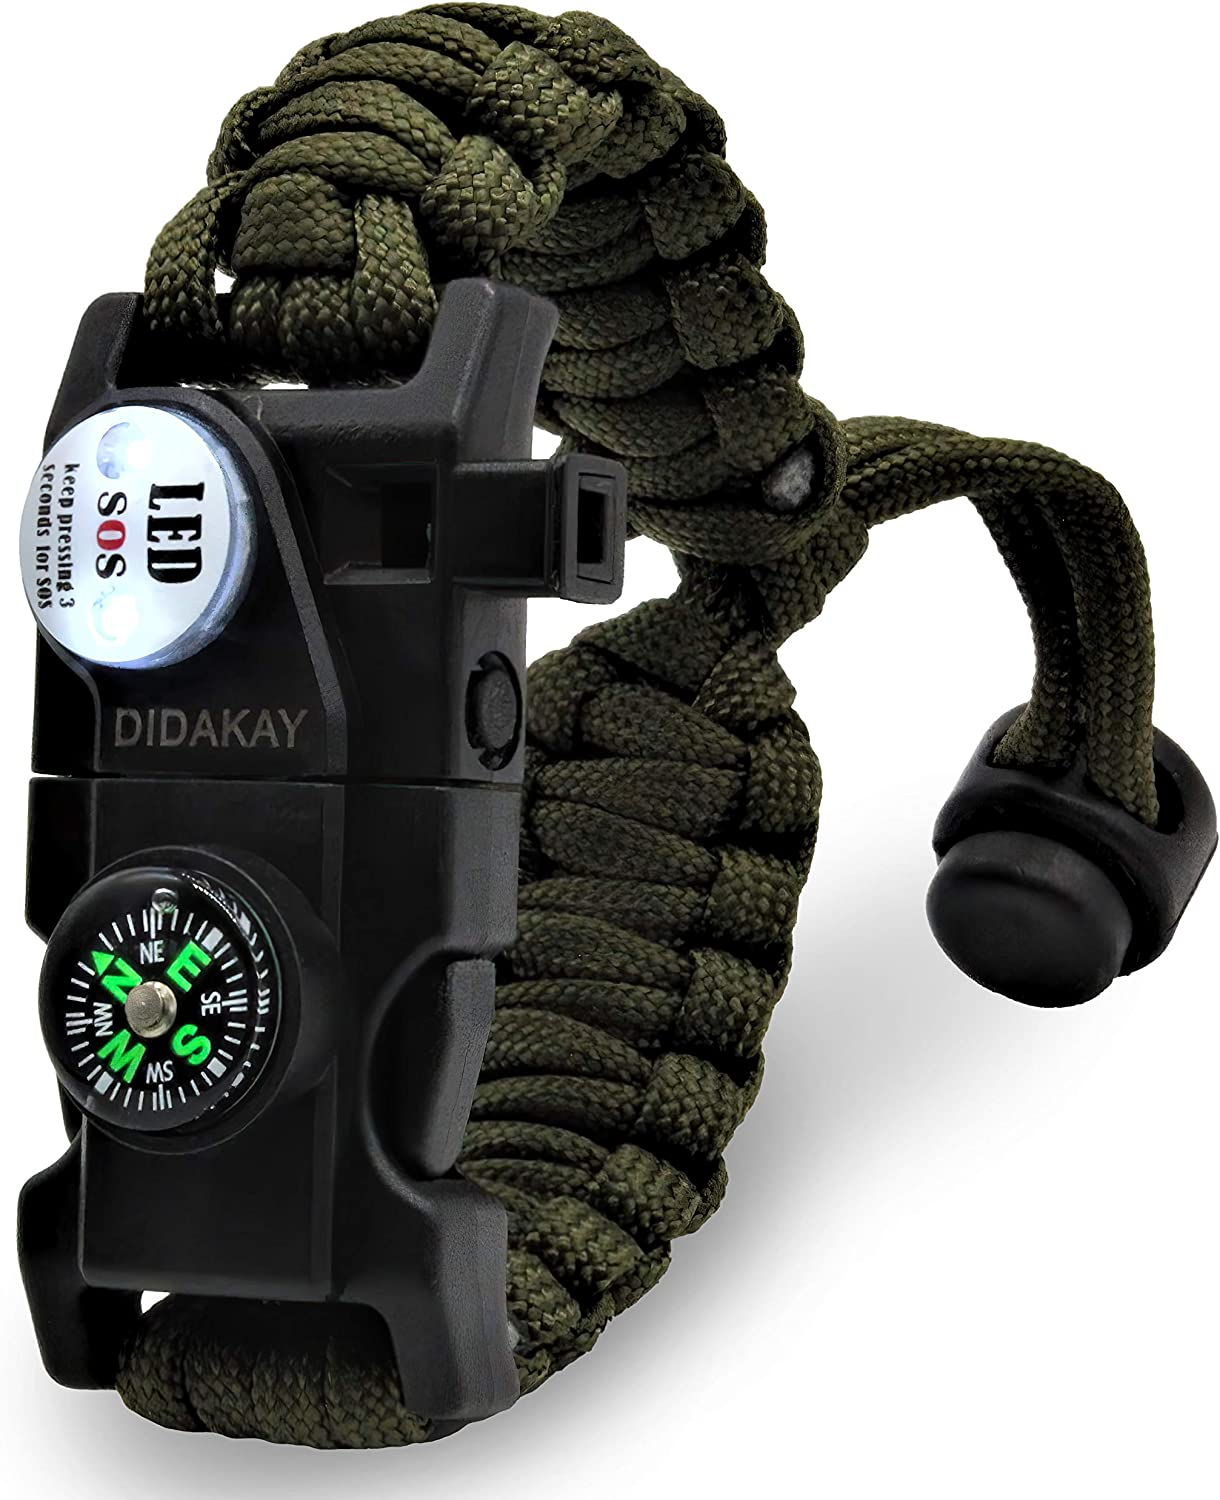 Didakay Paracord Knife Survival Bracelet, Fire Starter, Whistle, Compass